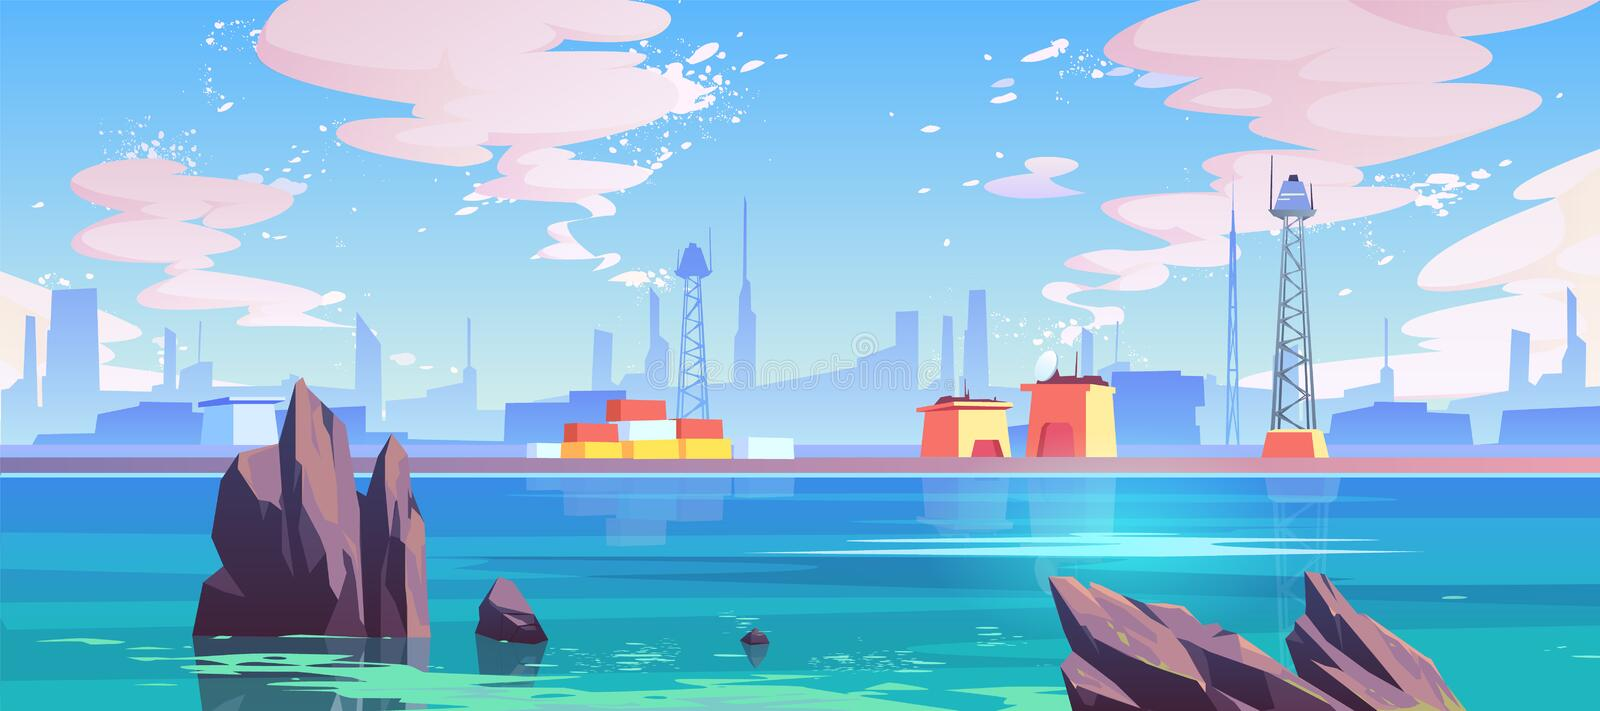 Sea port industrial shipyard with cargo containers stock illustration